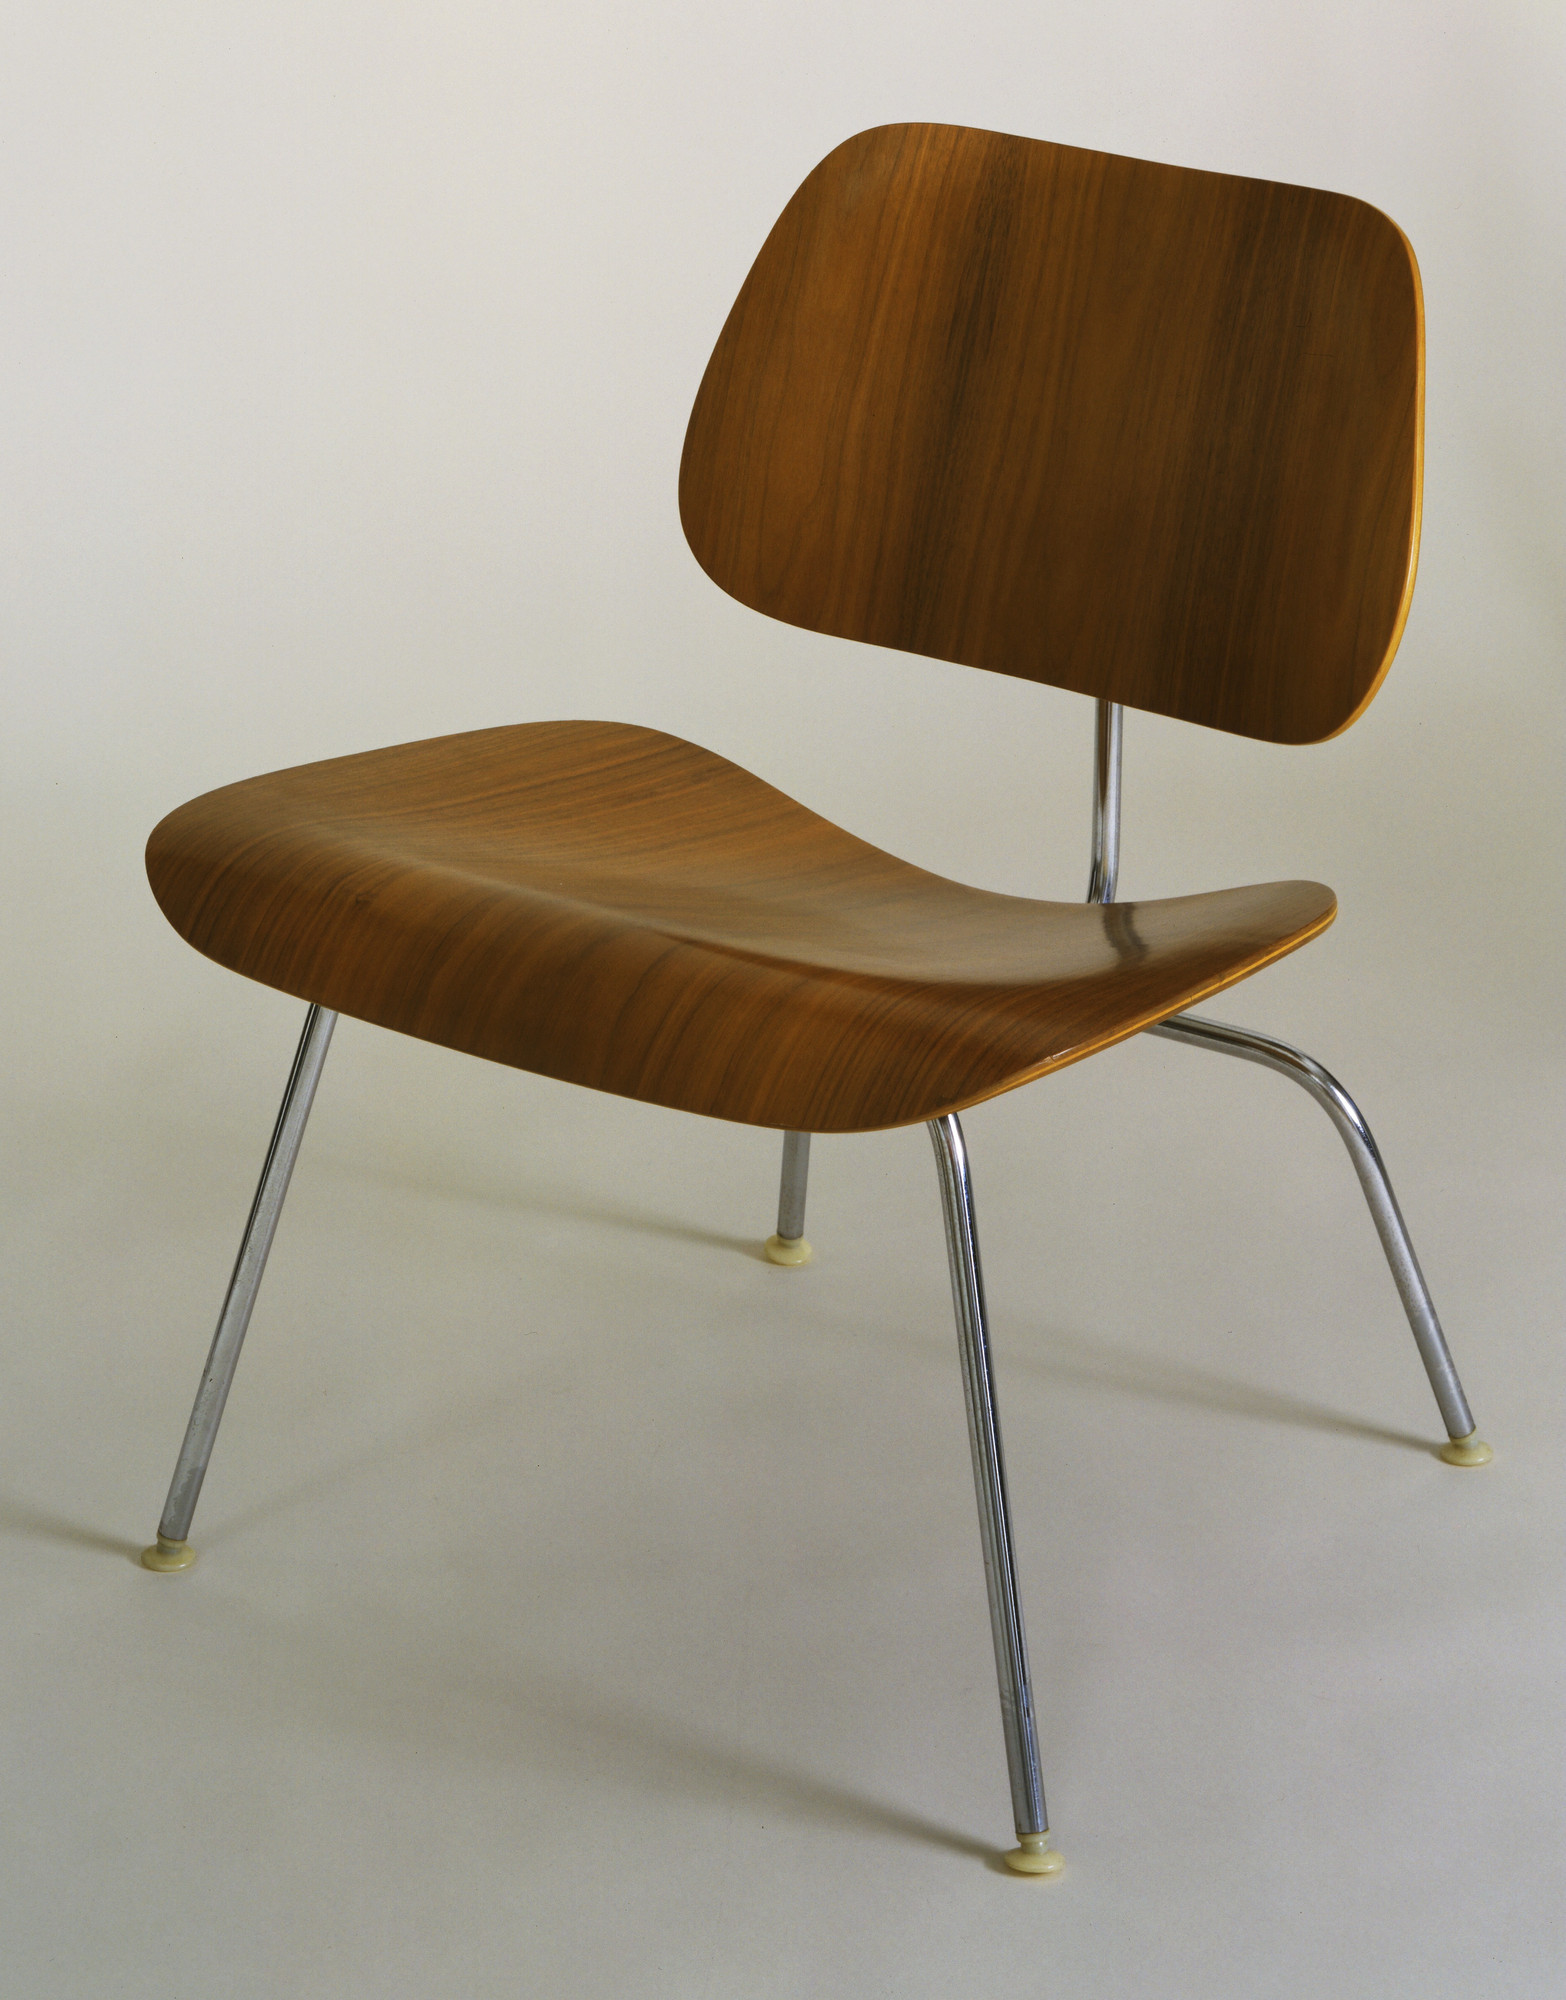 Surprising Charles Eames Ray Eames Low Side Chair Model Lcm 1946 Download Free Architecture Designs Scobabritishbridgeorg